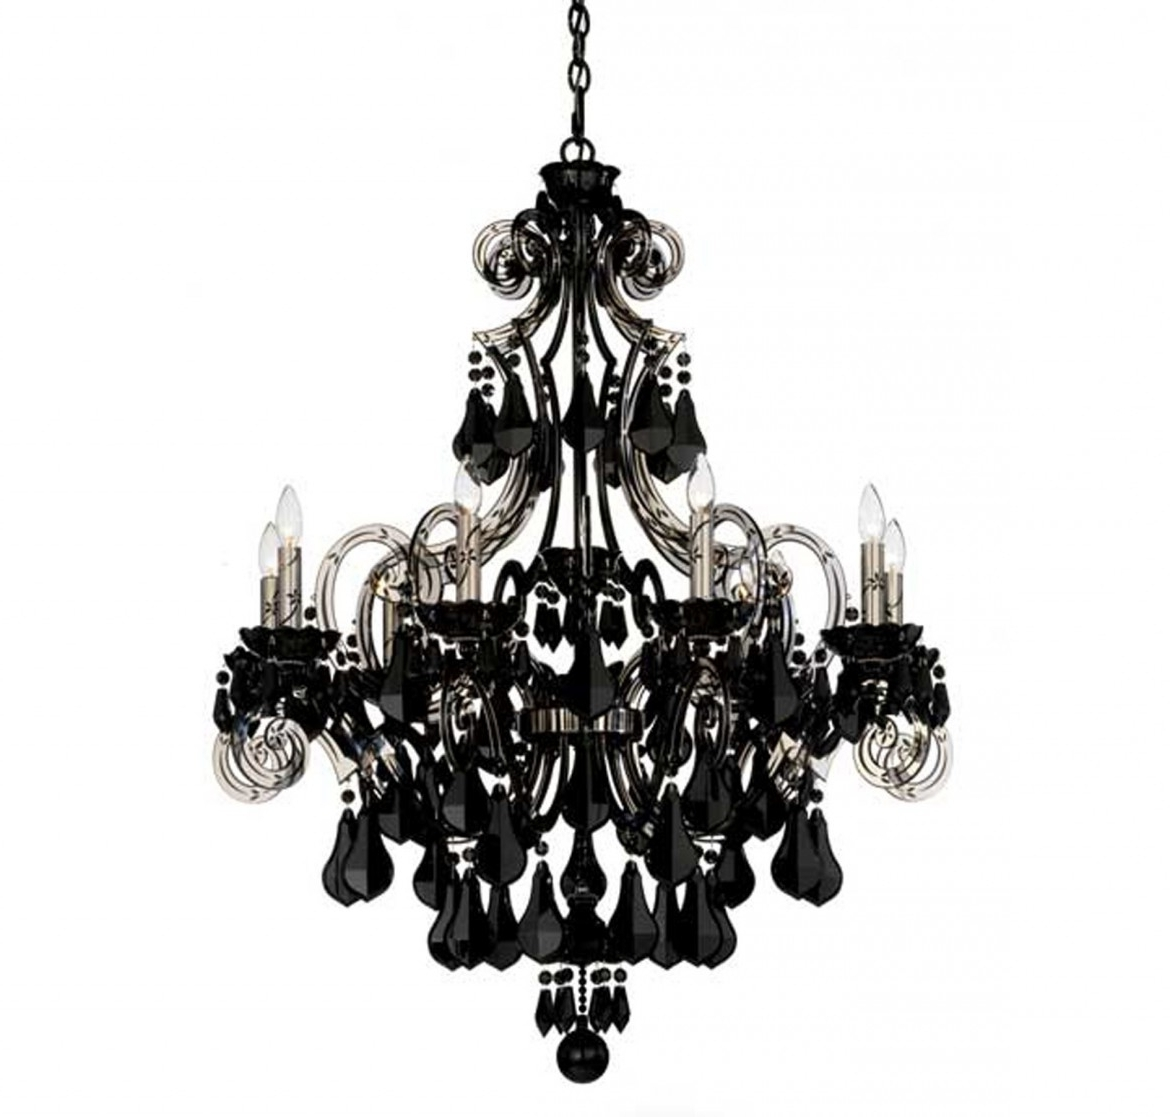 Black Chandeliers For And Chandelier Bedroom Modern Crystal Home Pertaining To 2018 Modern Black Chandelier (View 20 of 20)